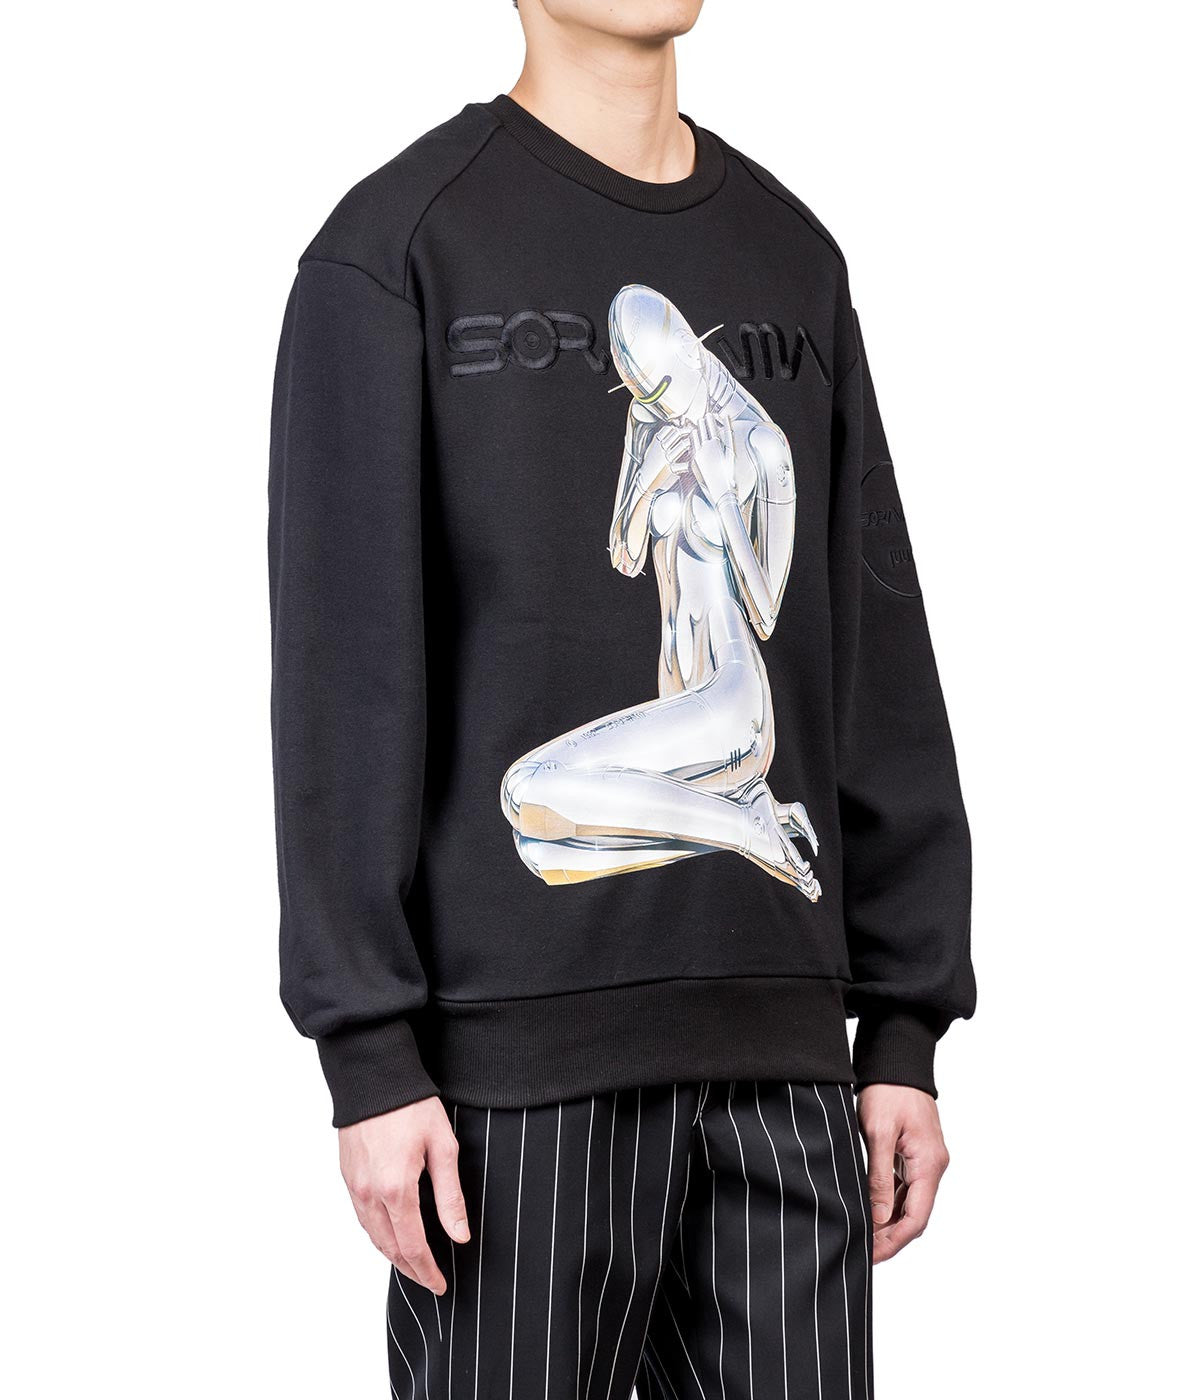 Sorayama Oversized Graphic Sweatshirt